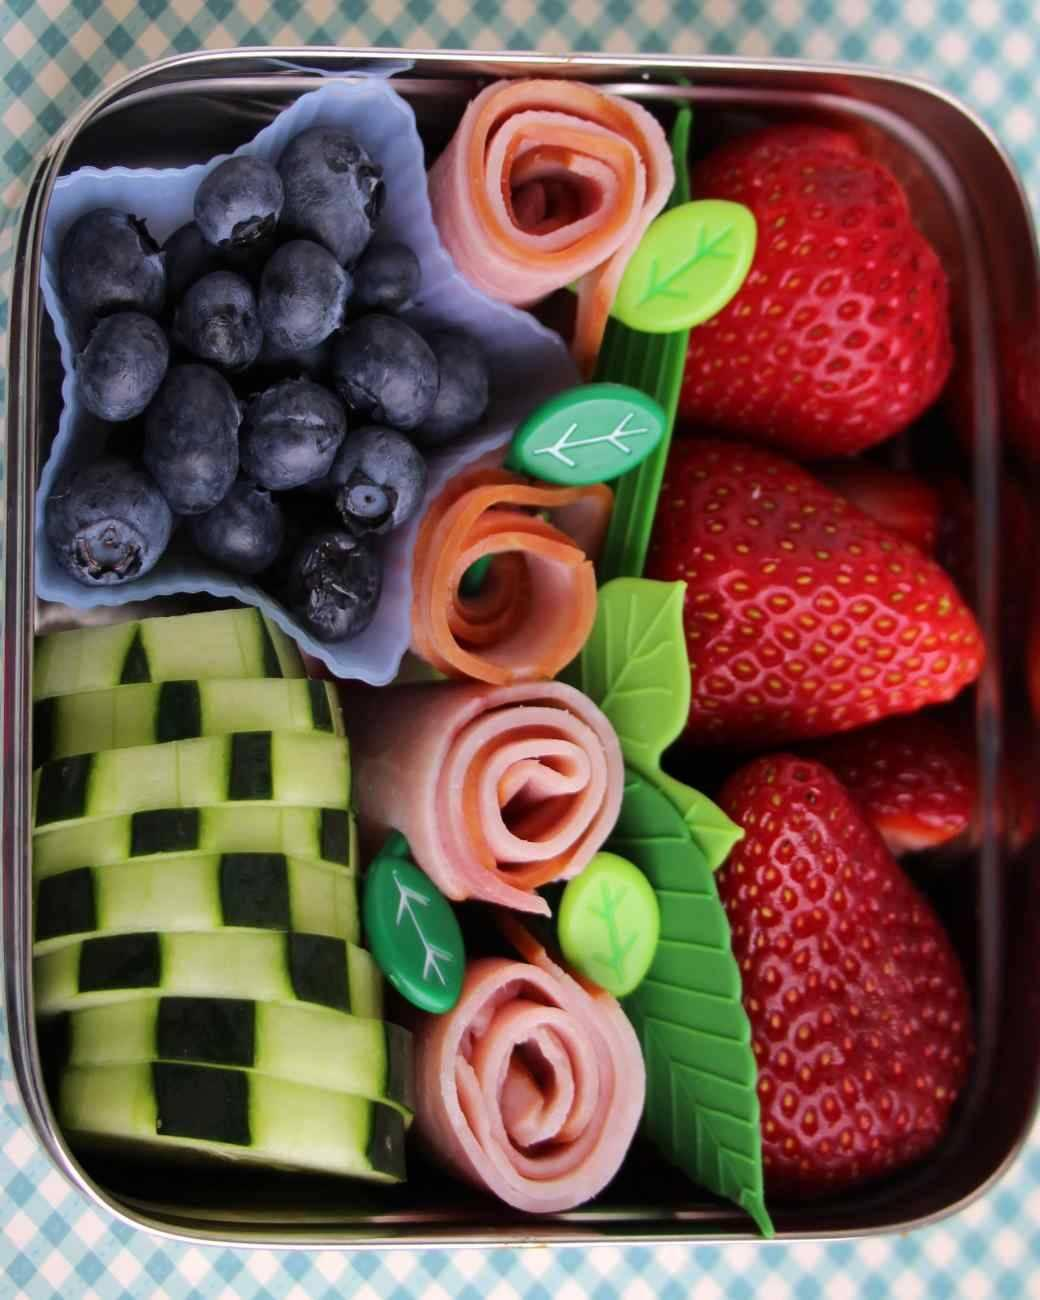 12 Super-Cool Lunches Your Kids Will Go Nuts For